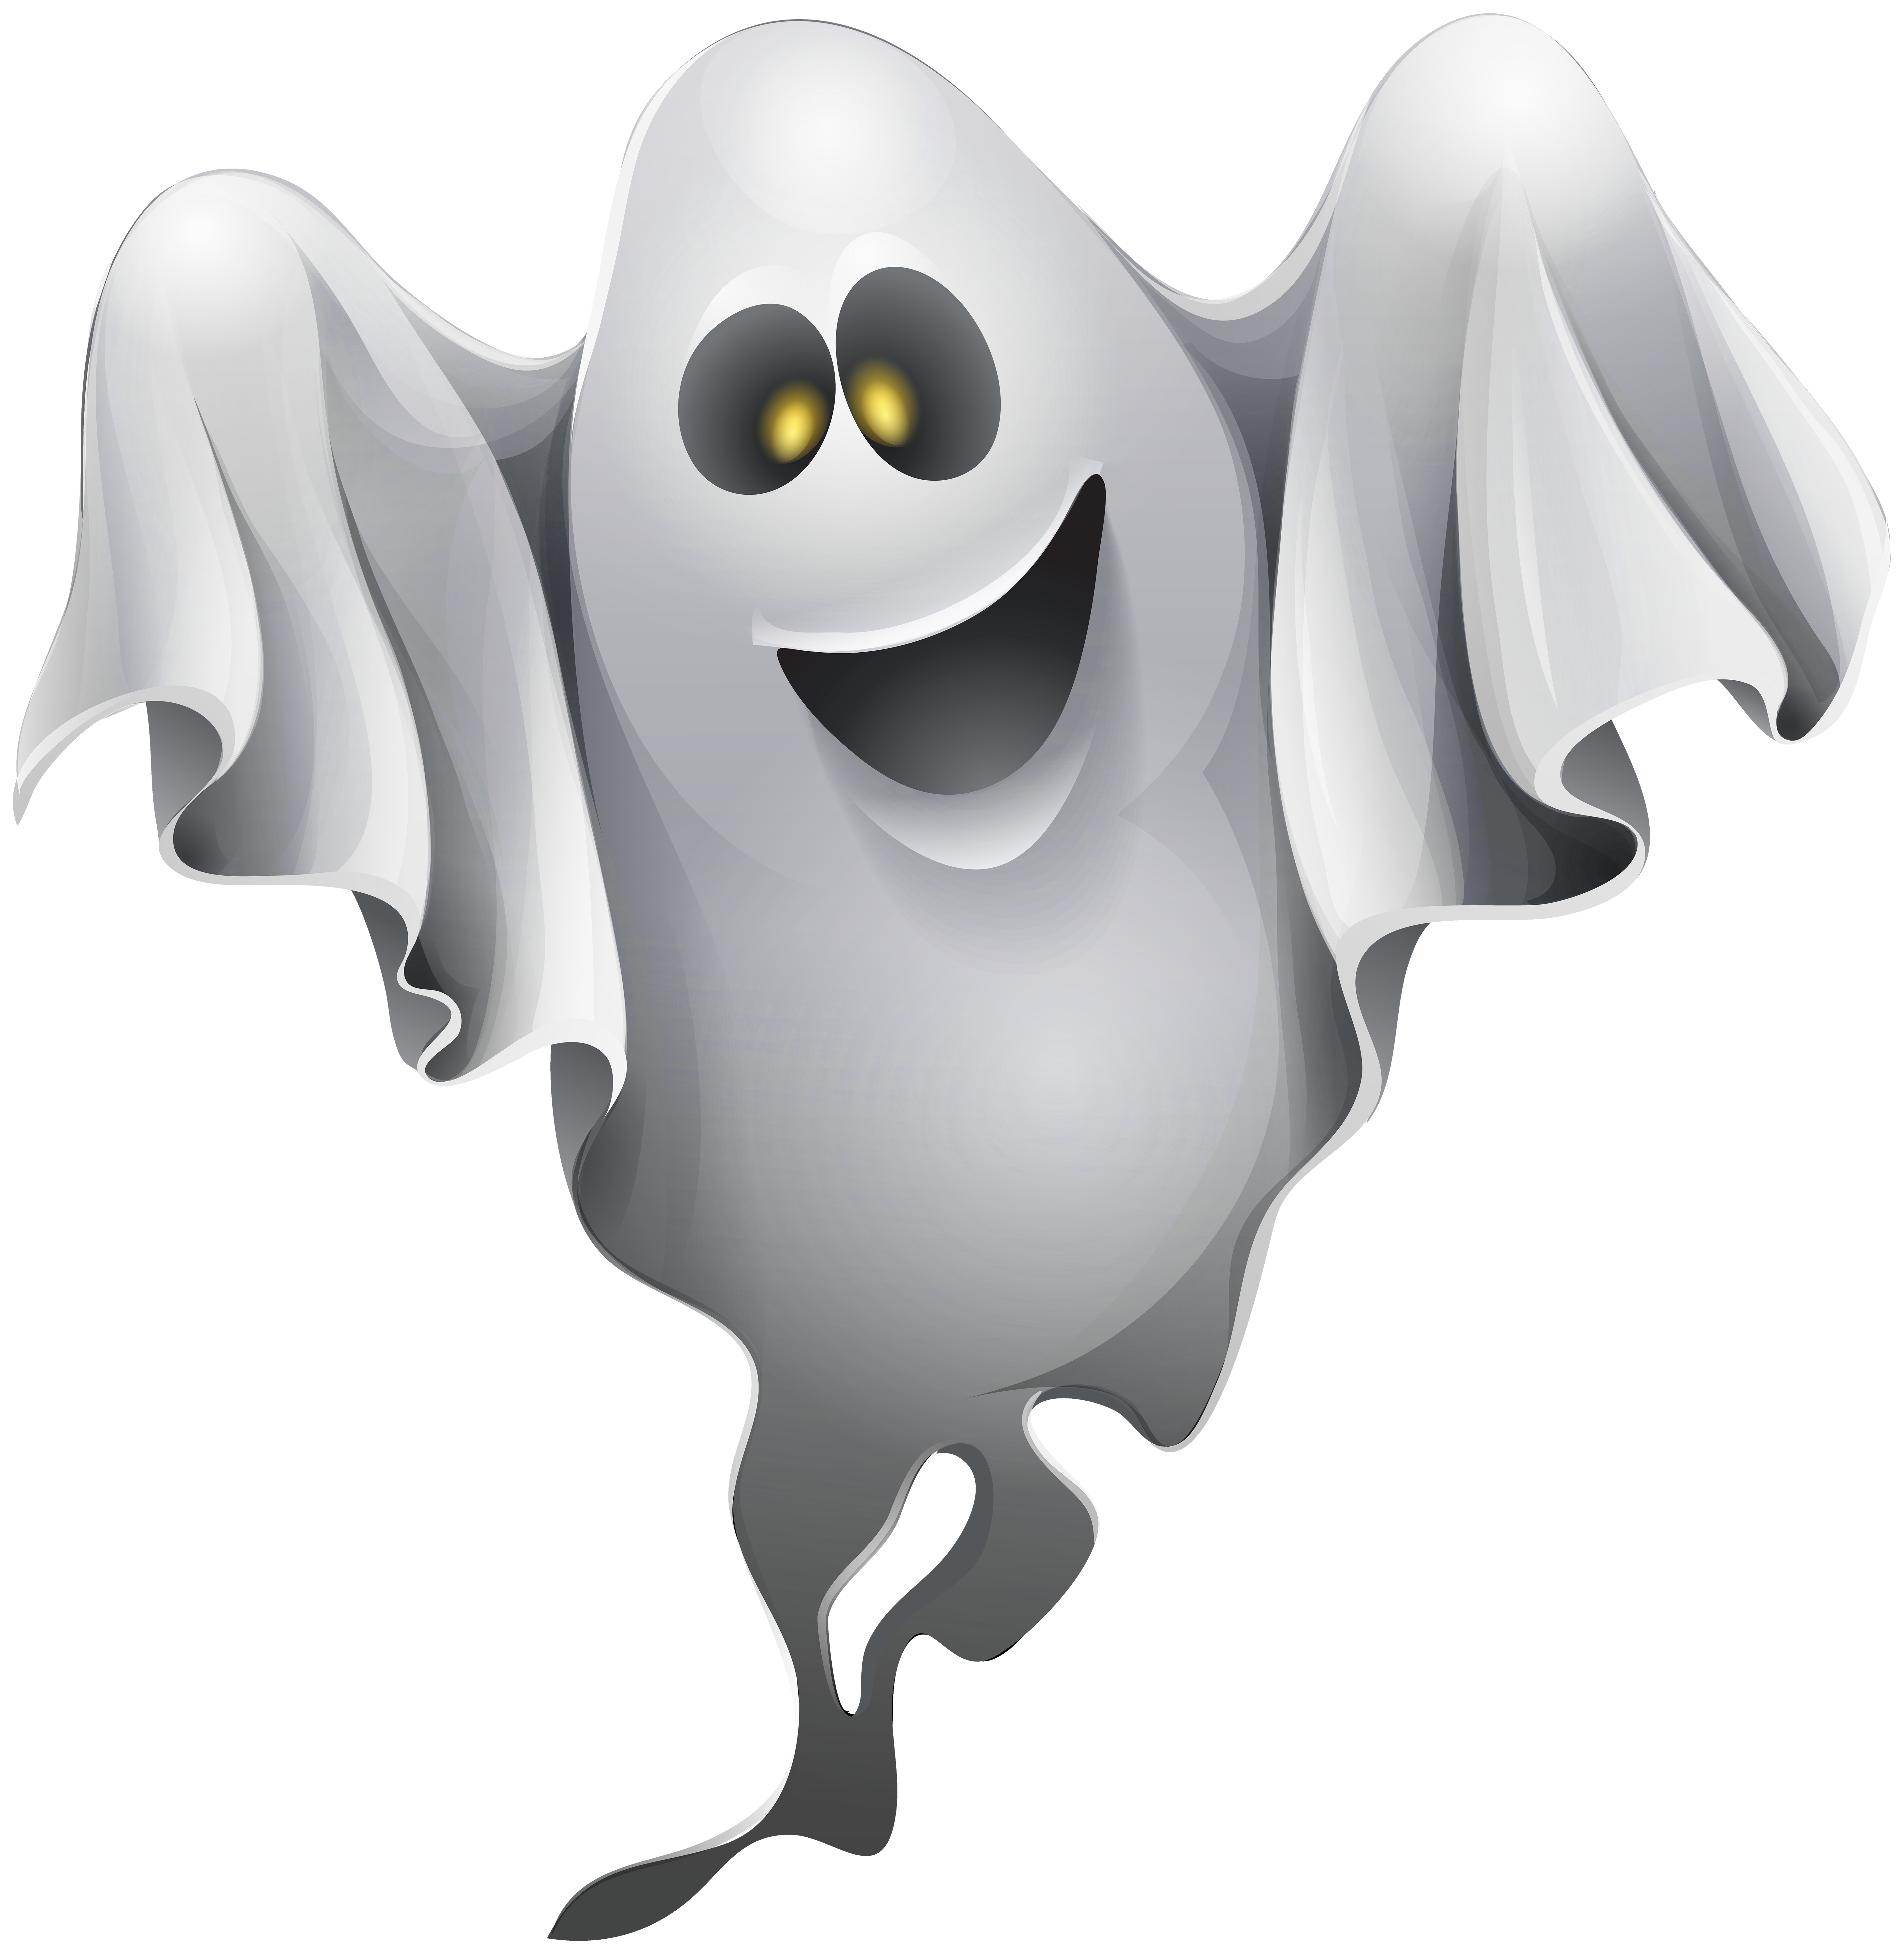 Halloween png ghost. Clip art image gallery